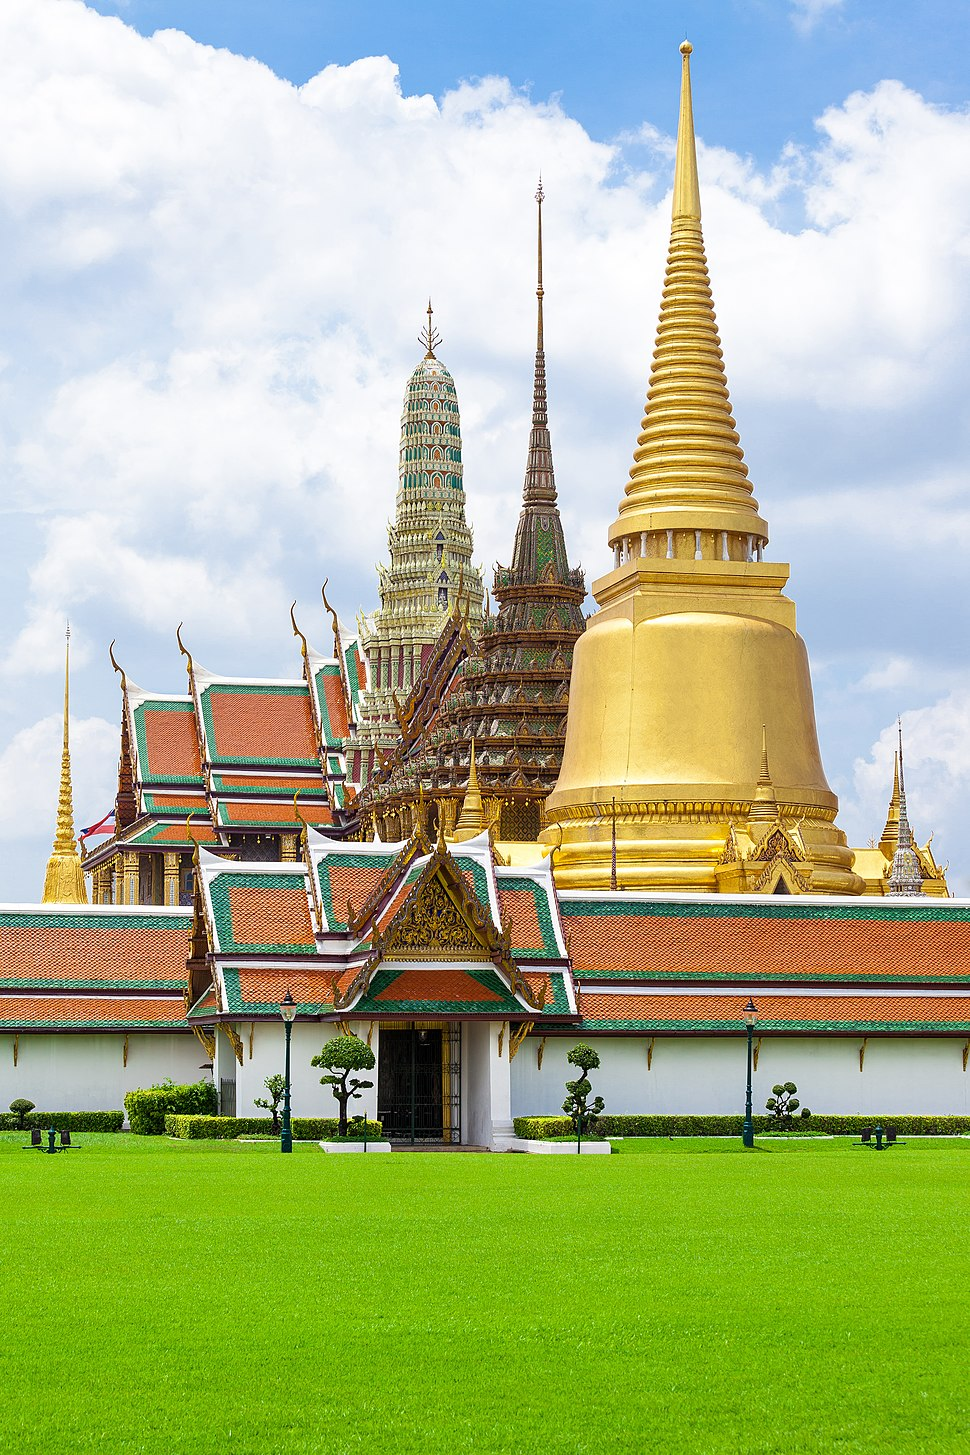 The Three Chedis, Wat Phra Kaew